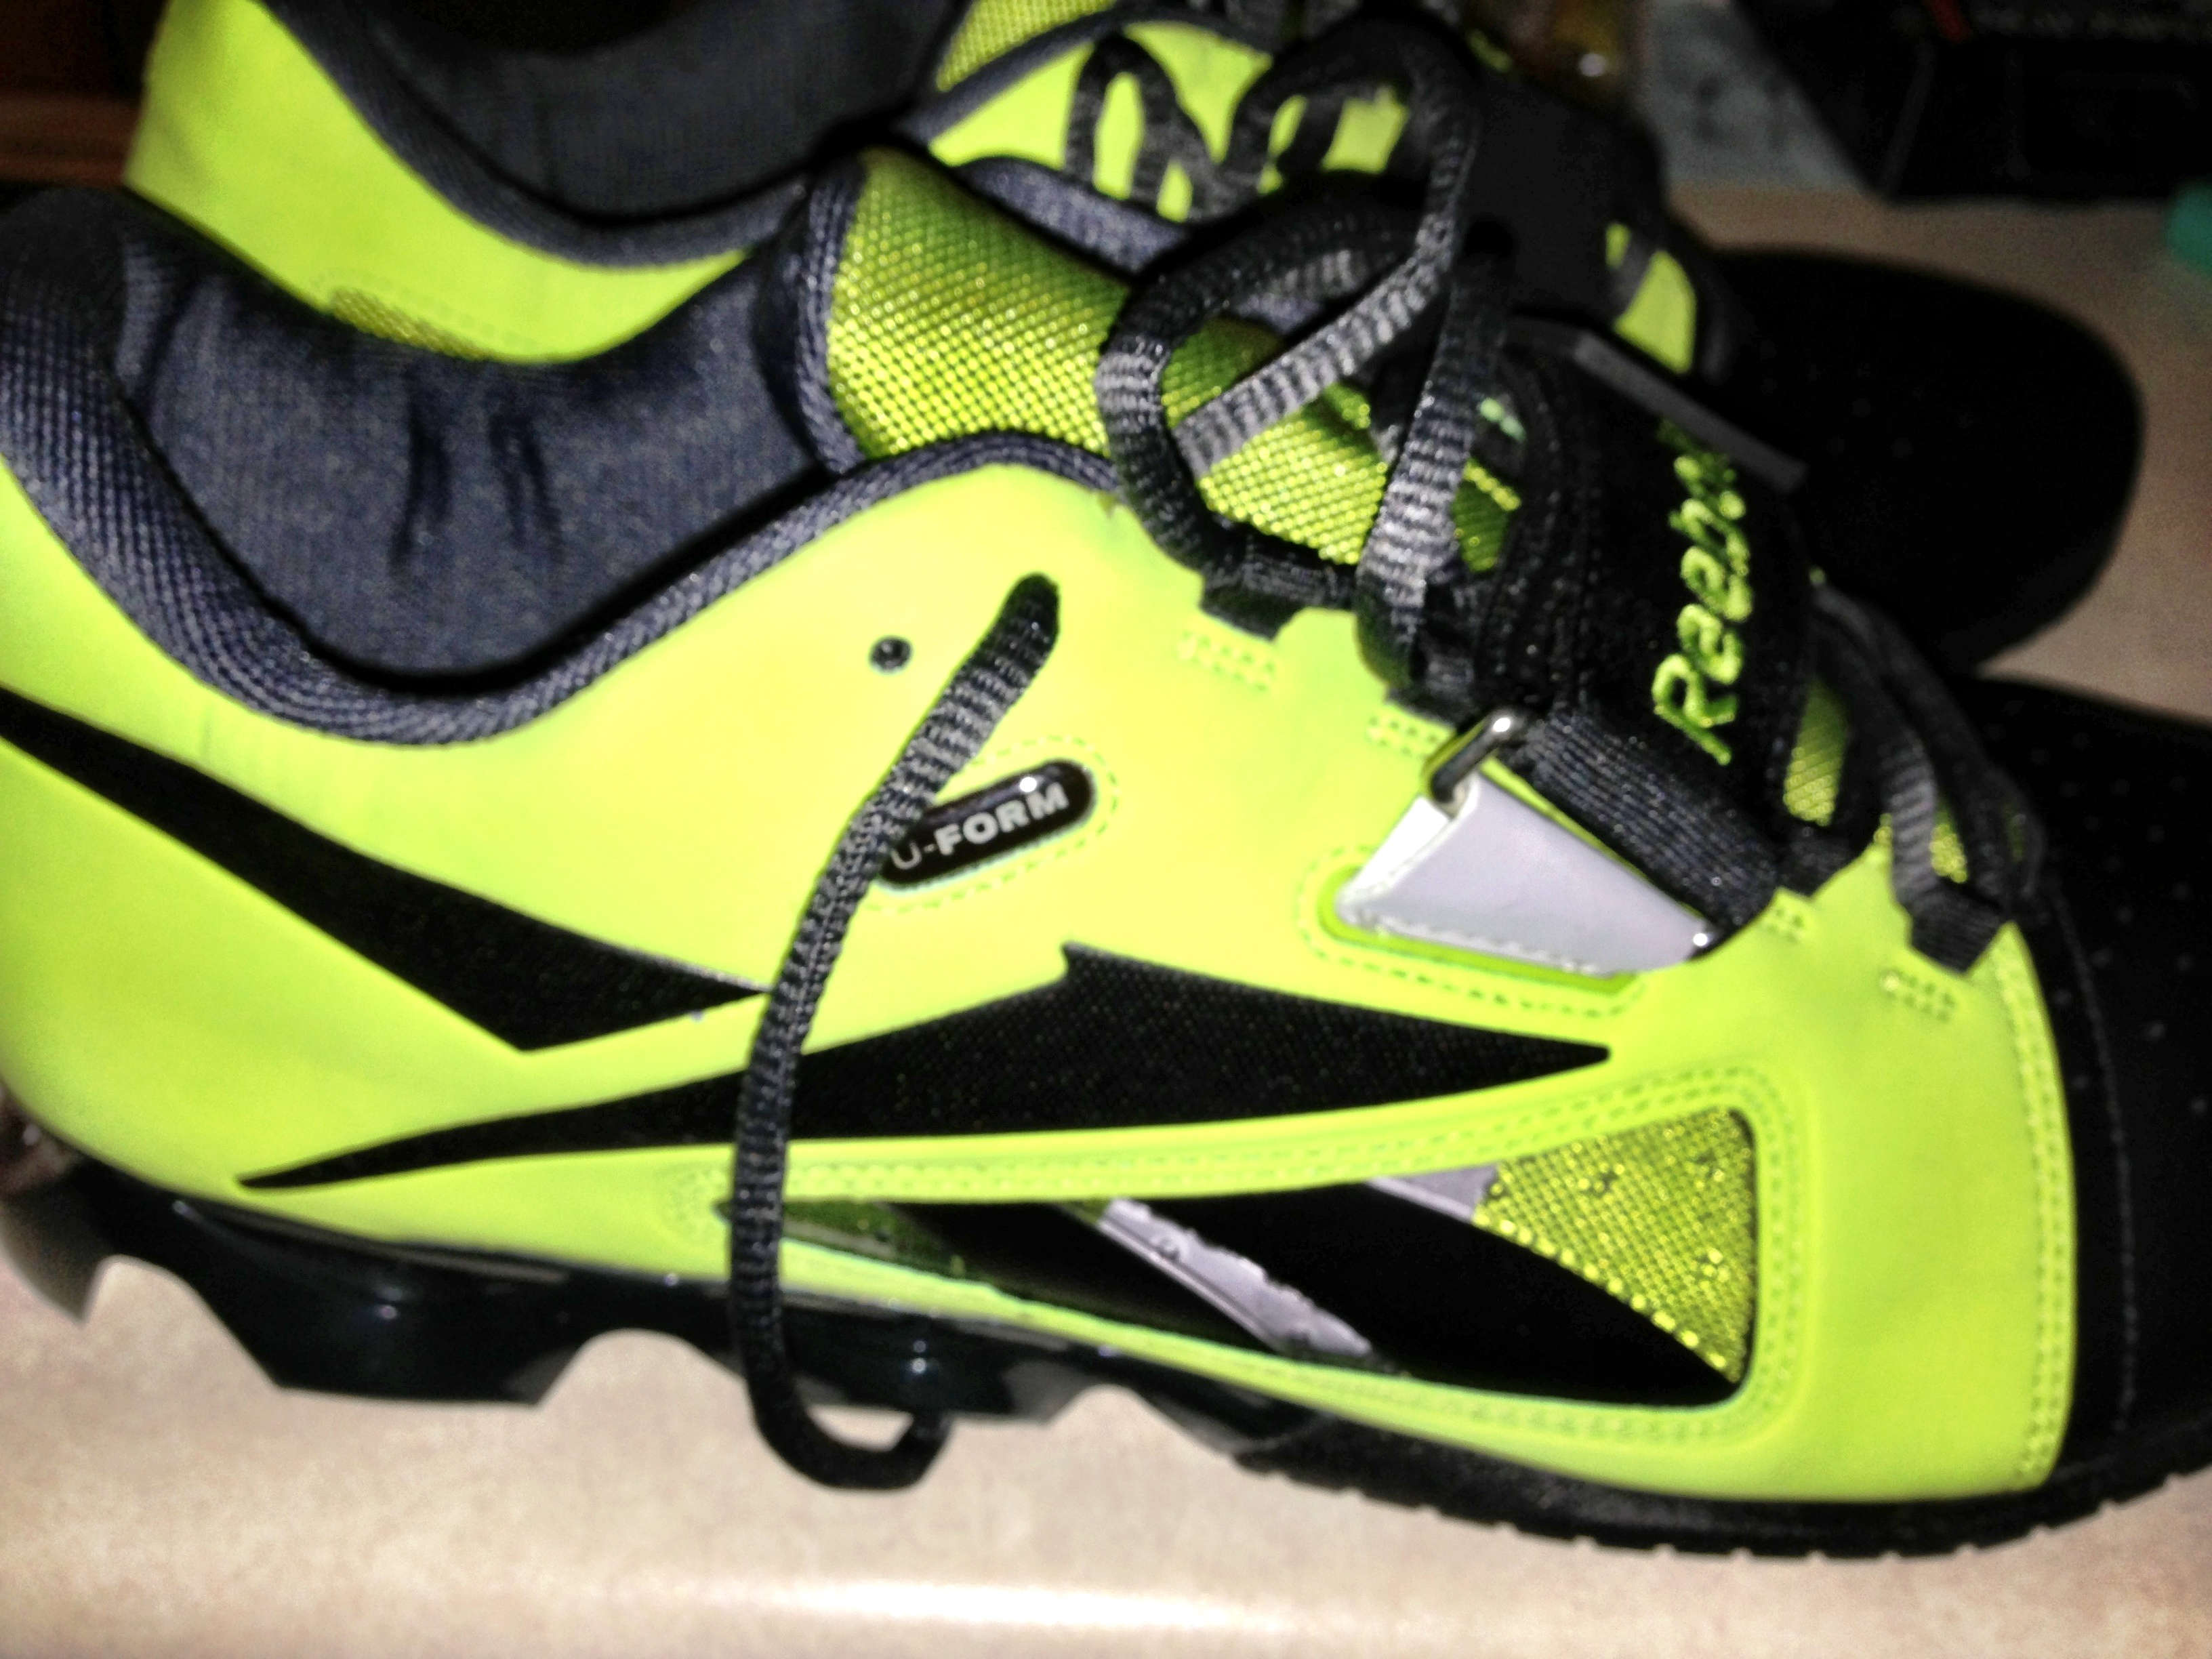 Reebok CrossFit Lifter Shoes Review